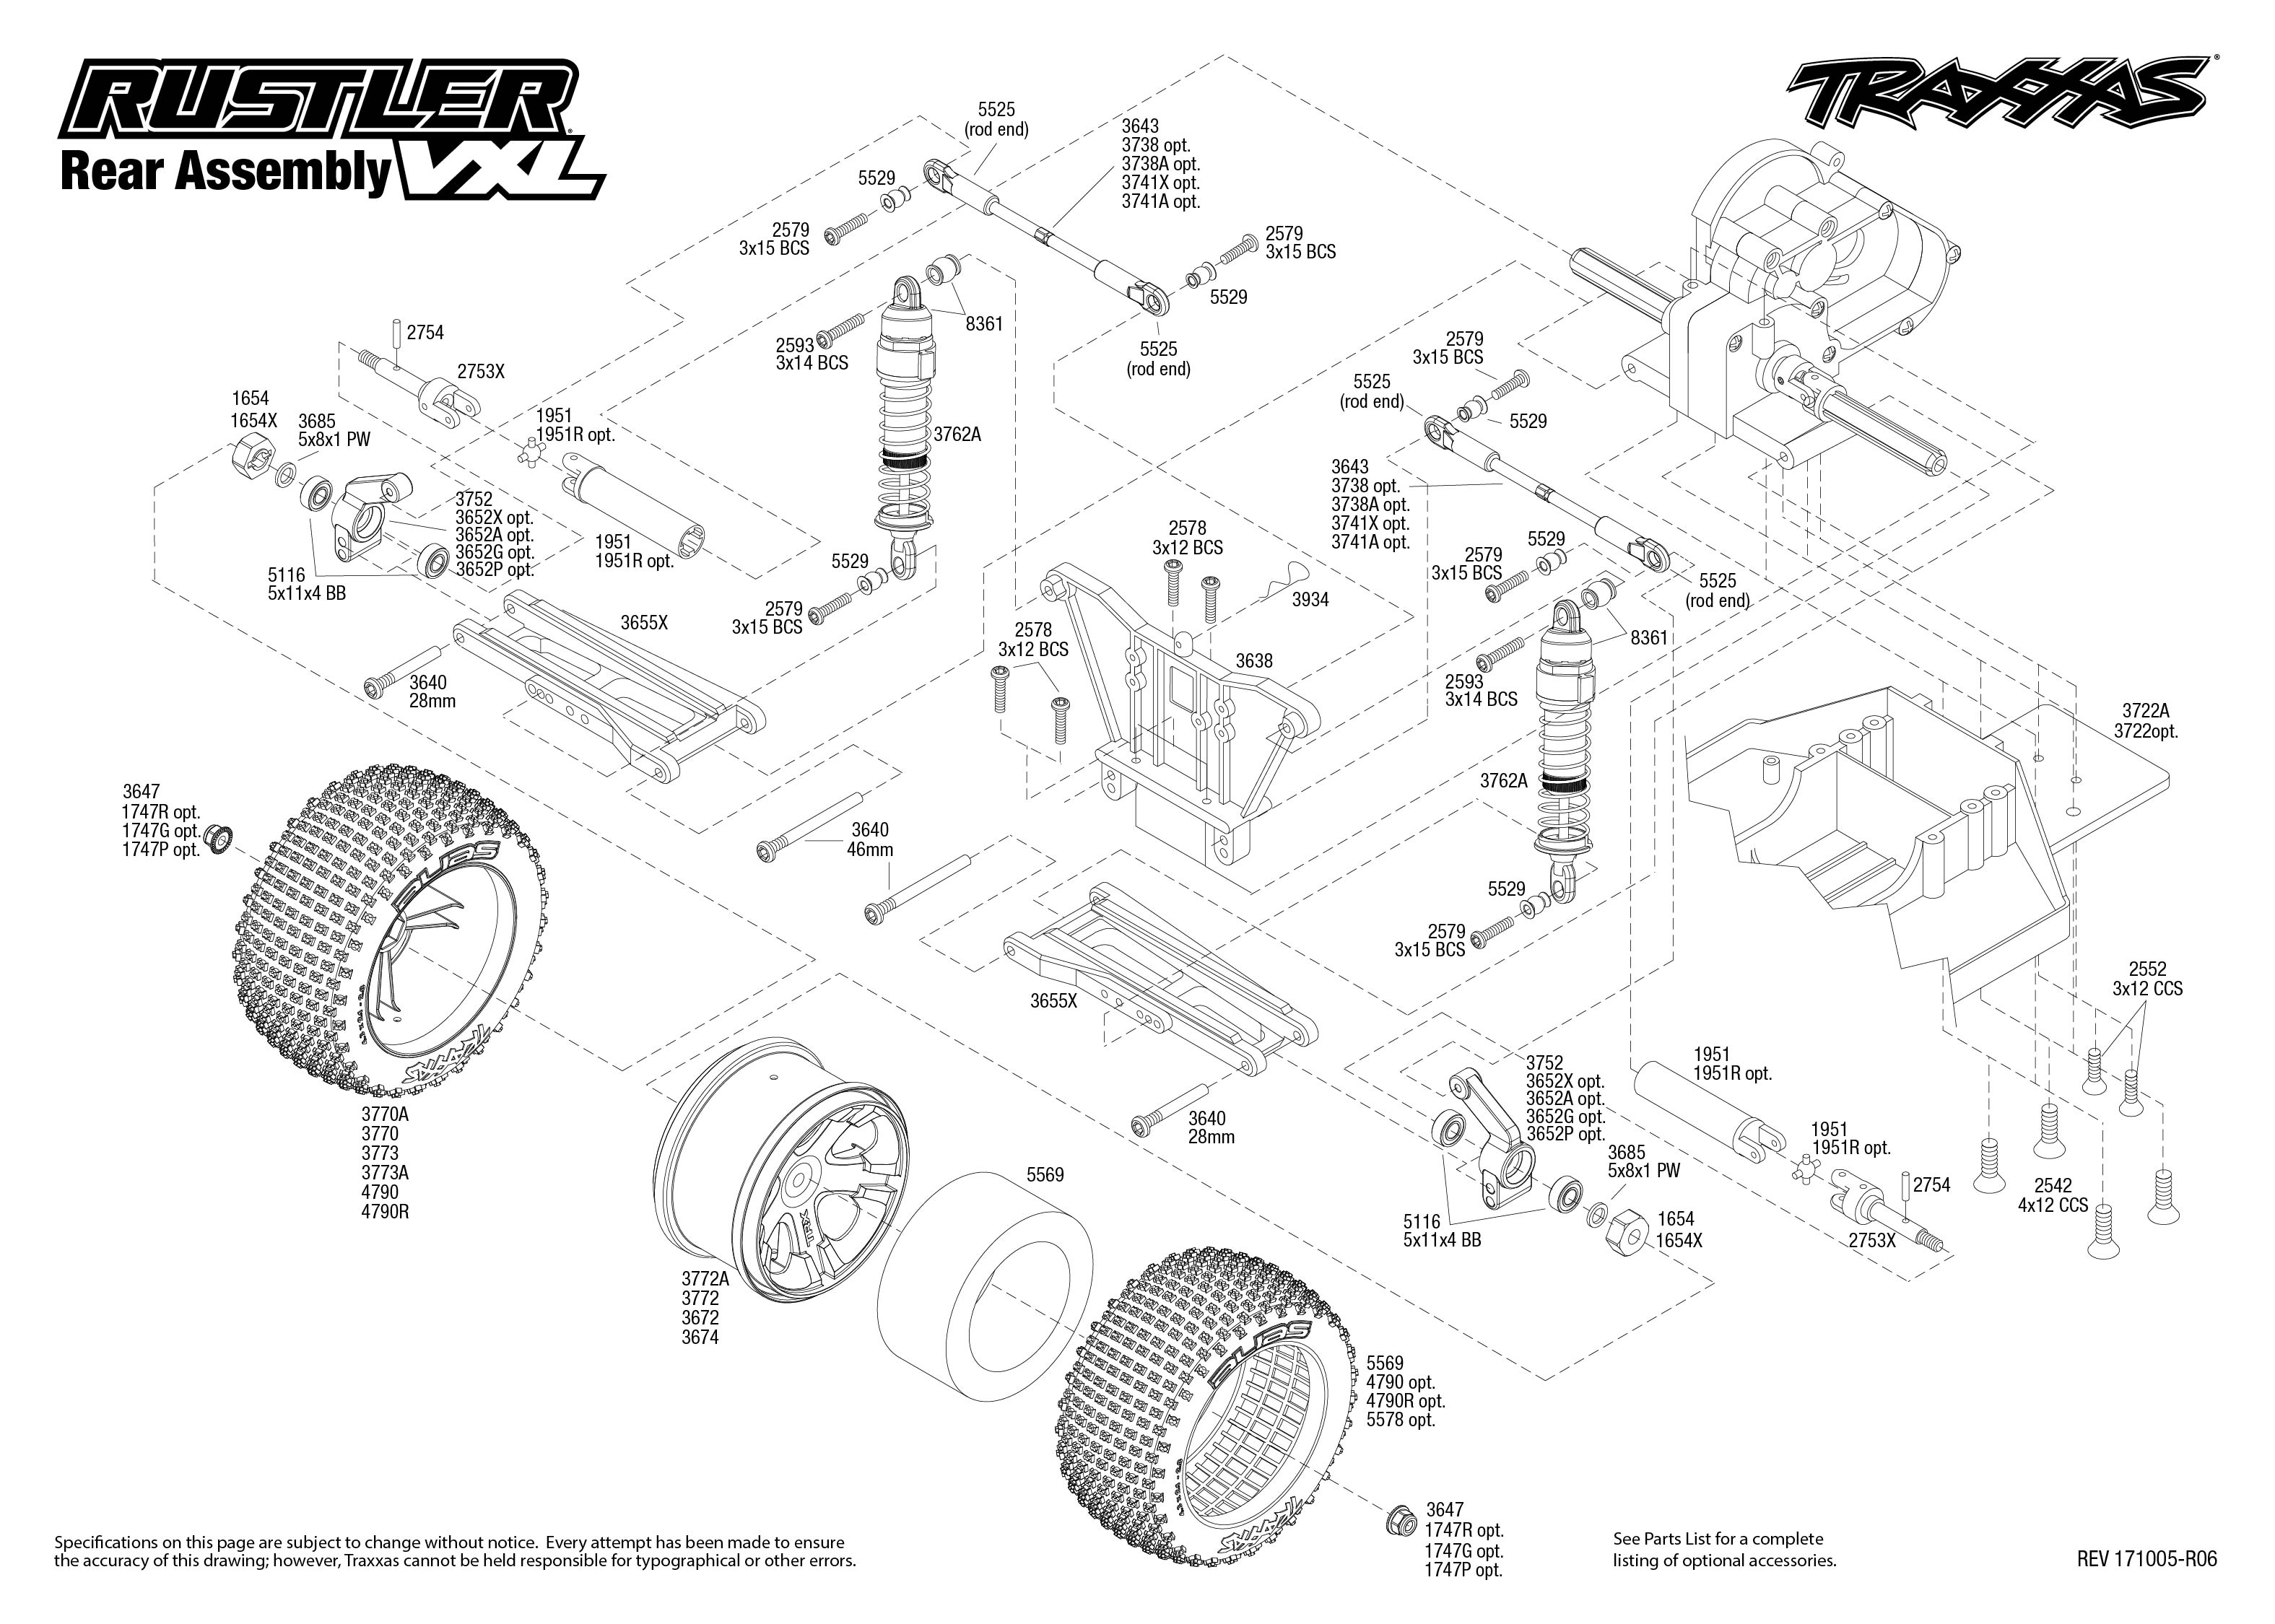 Rustler Vxl 3 Rear Assembly Exploded View